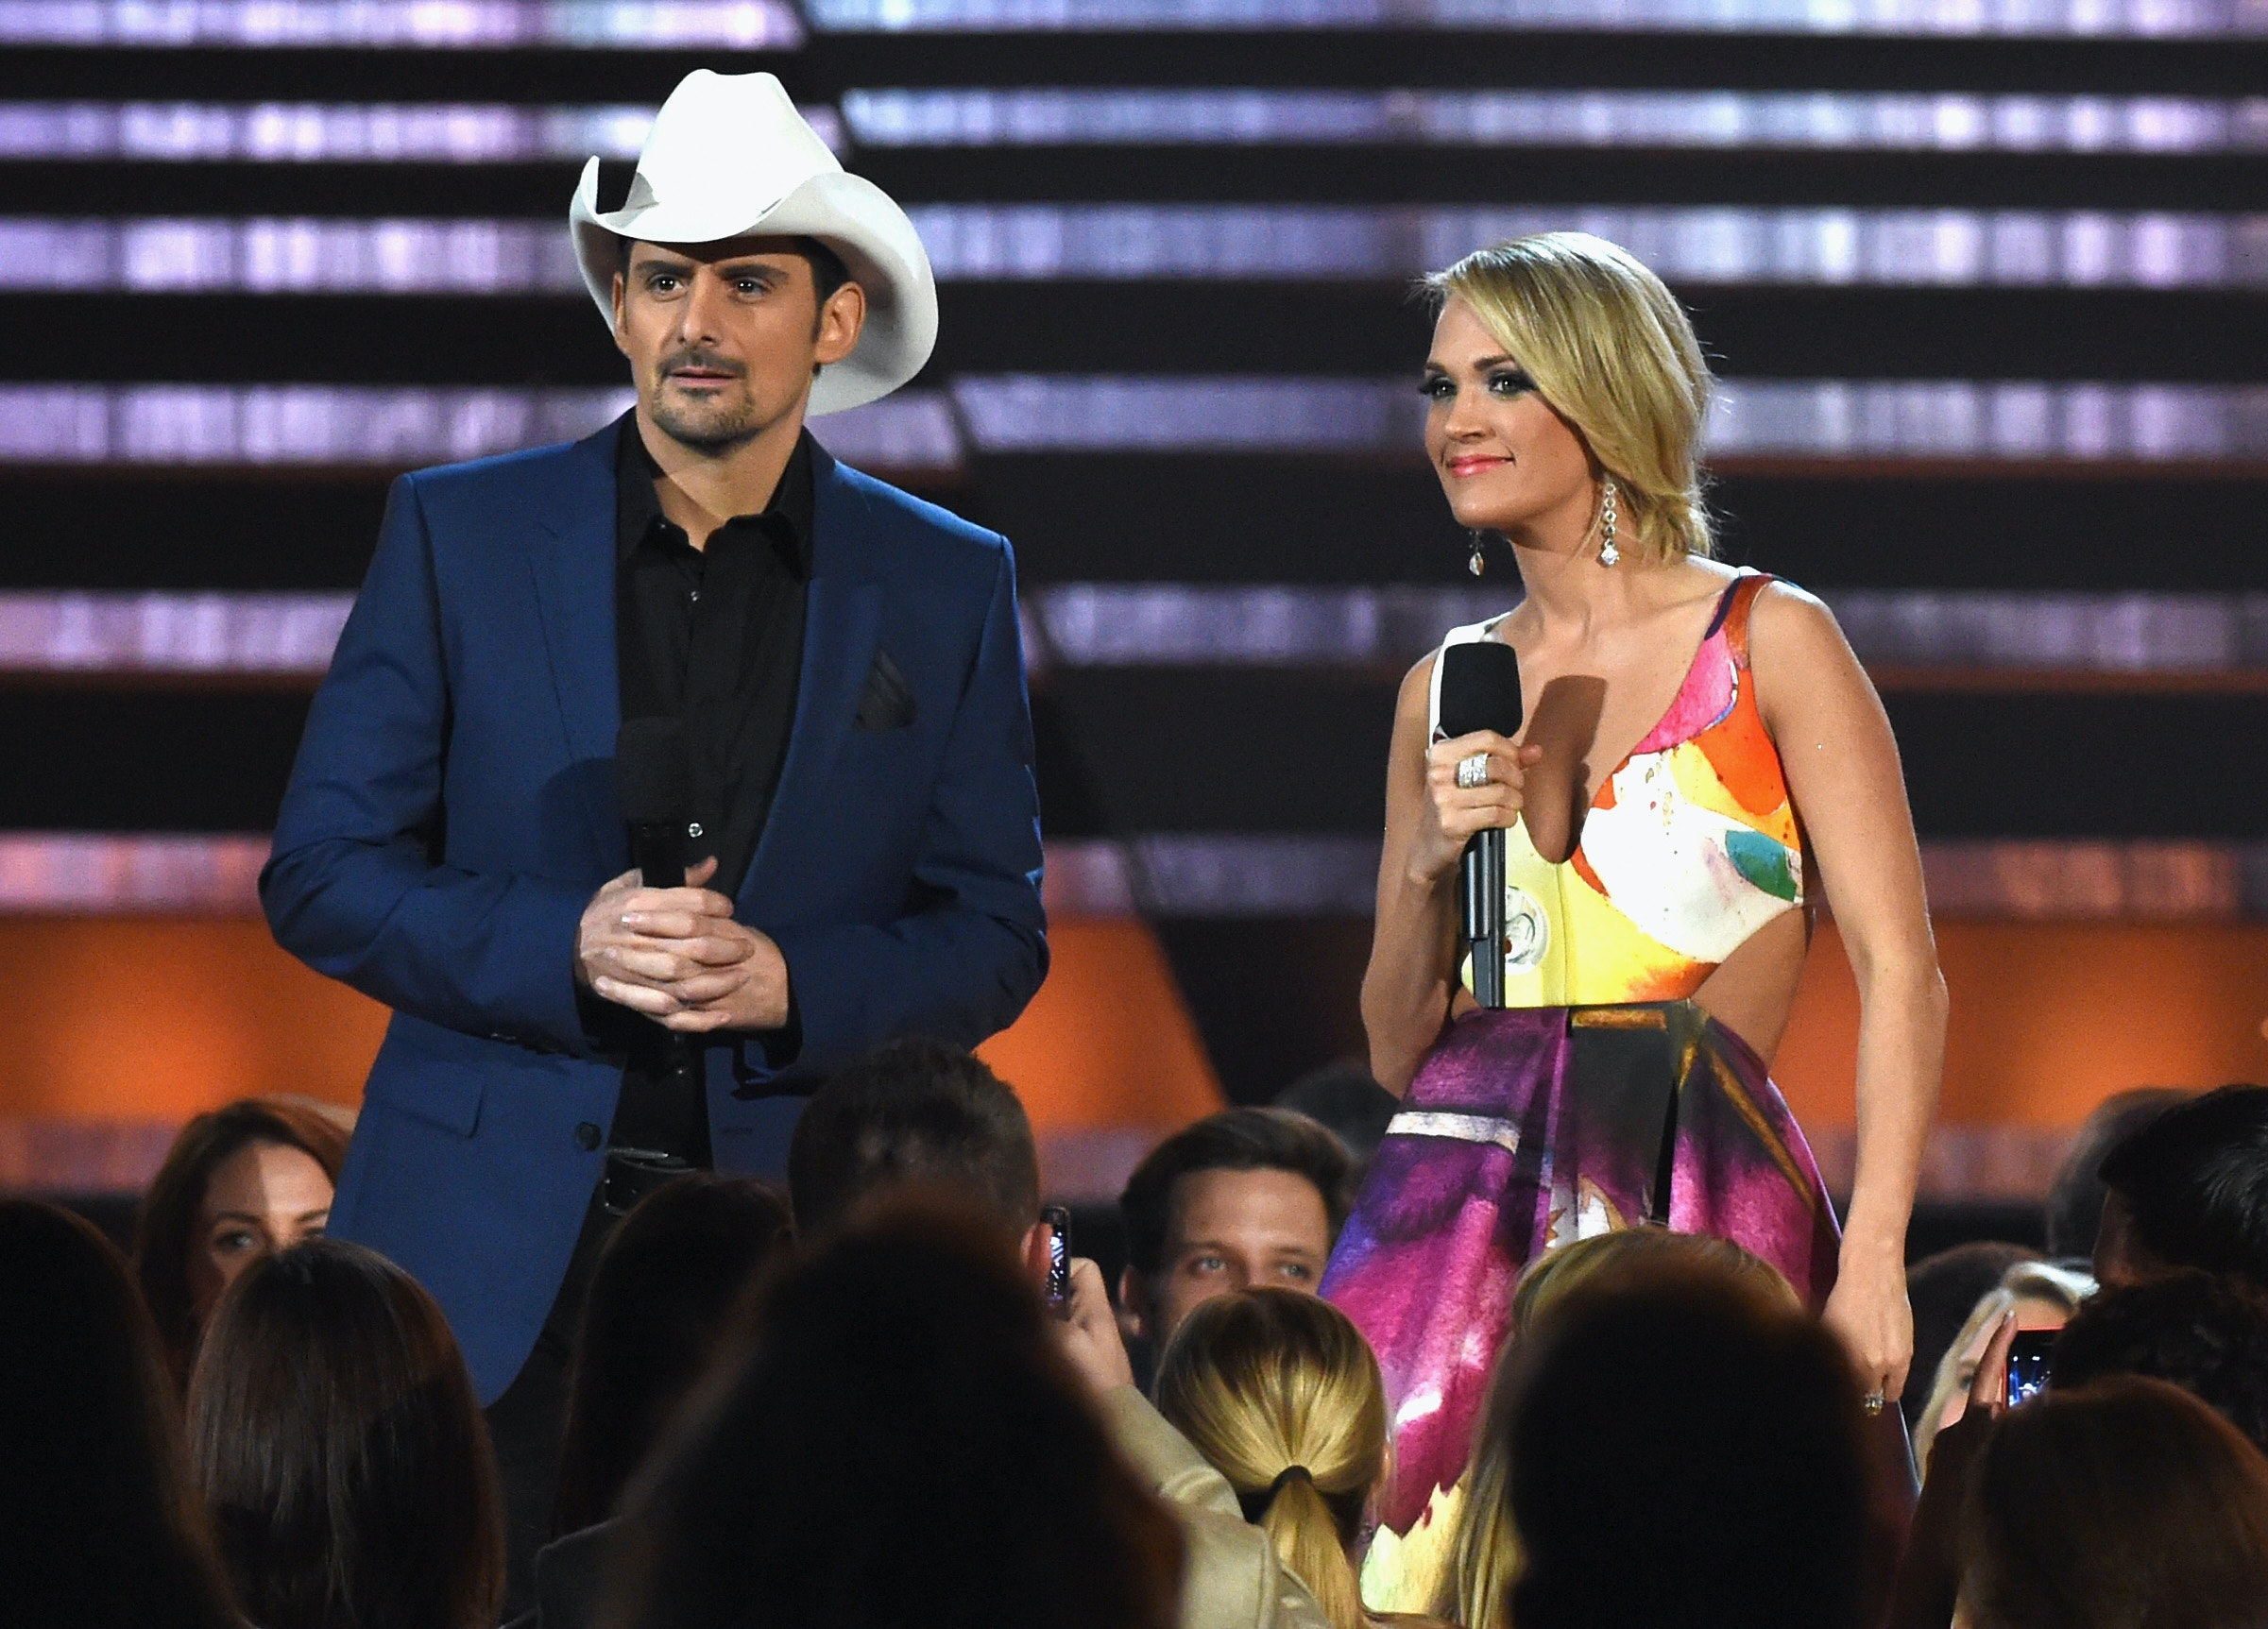 CMA Awards: The list of winners